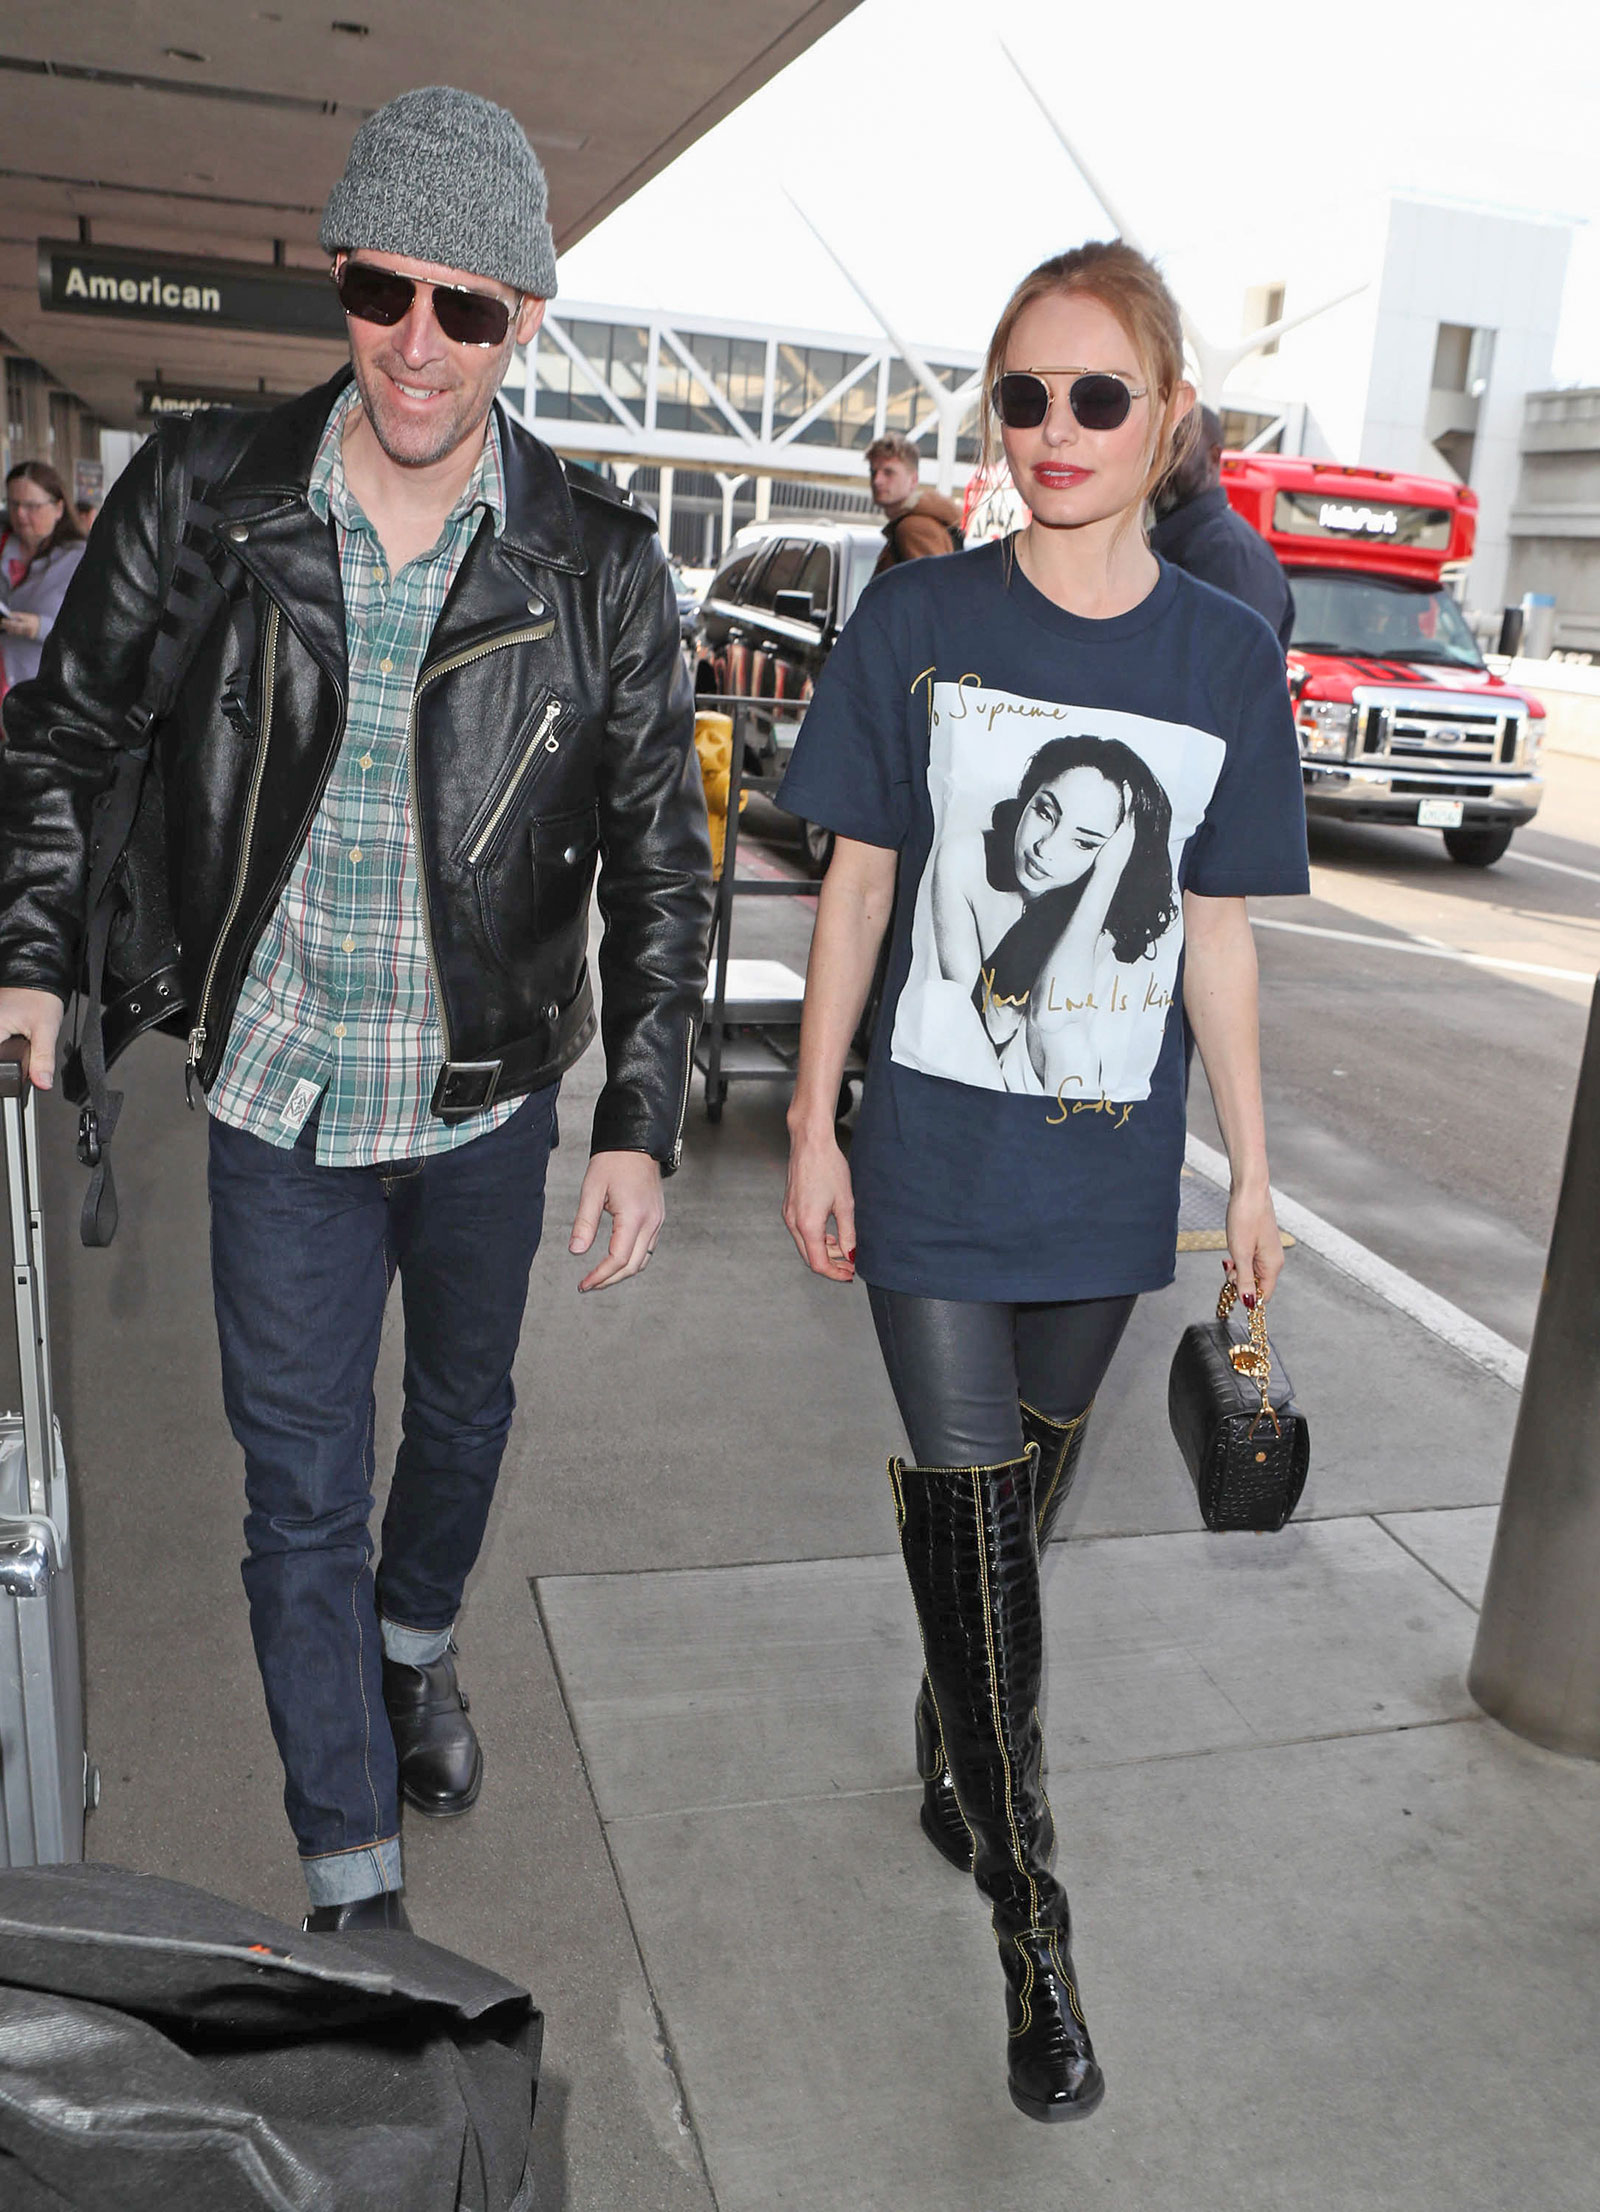 Kate Bosworth wears a Sade t-shirt by Supreme while making her way through LAX.